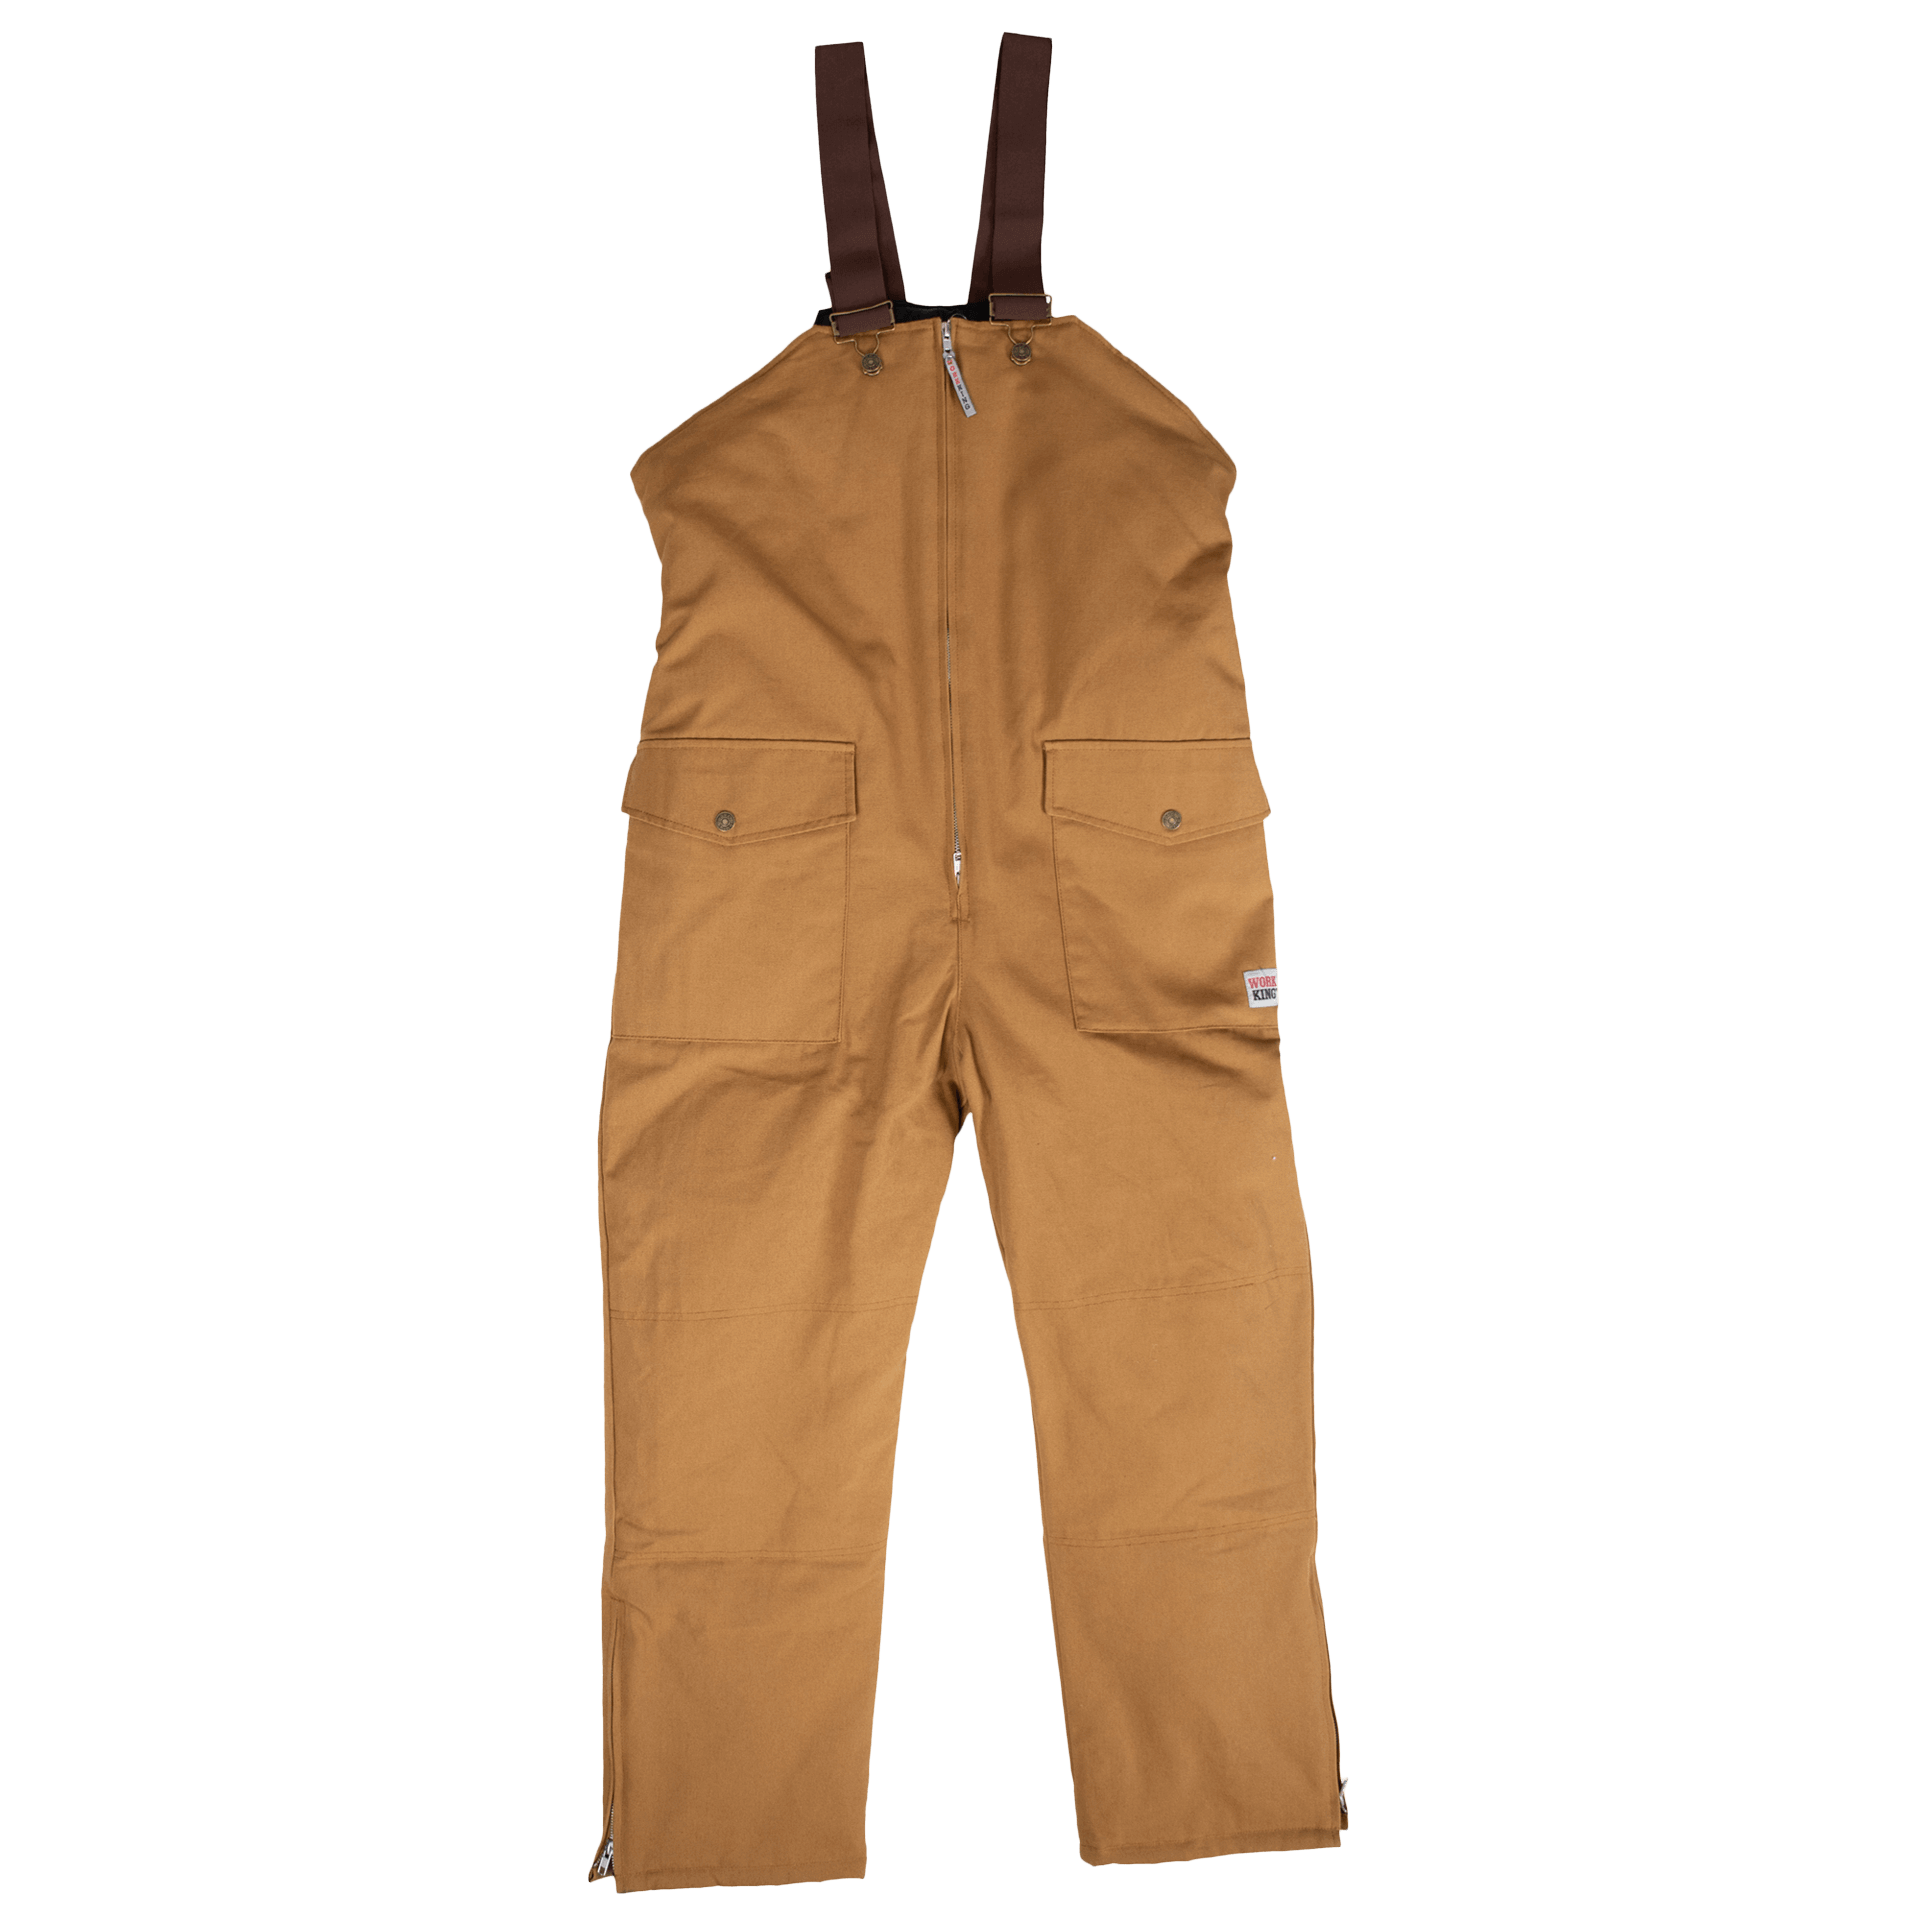 Work King Lined Bib Overall - 7930